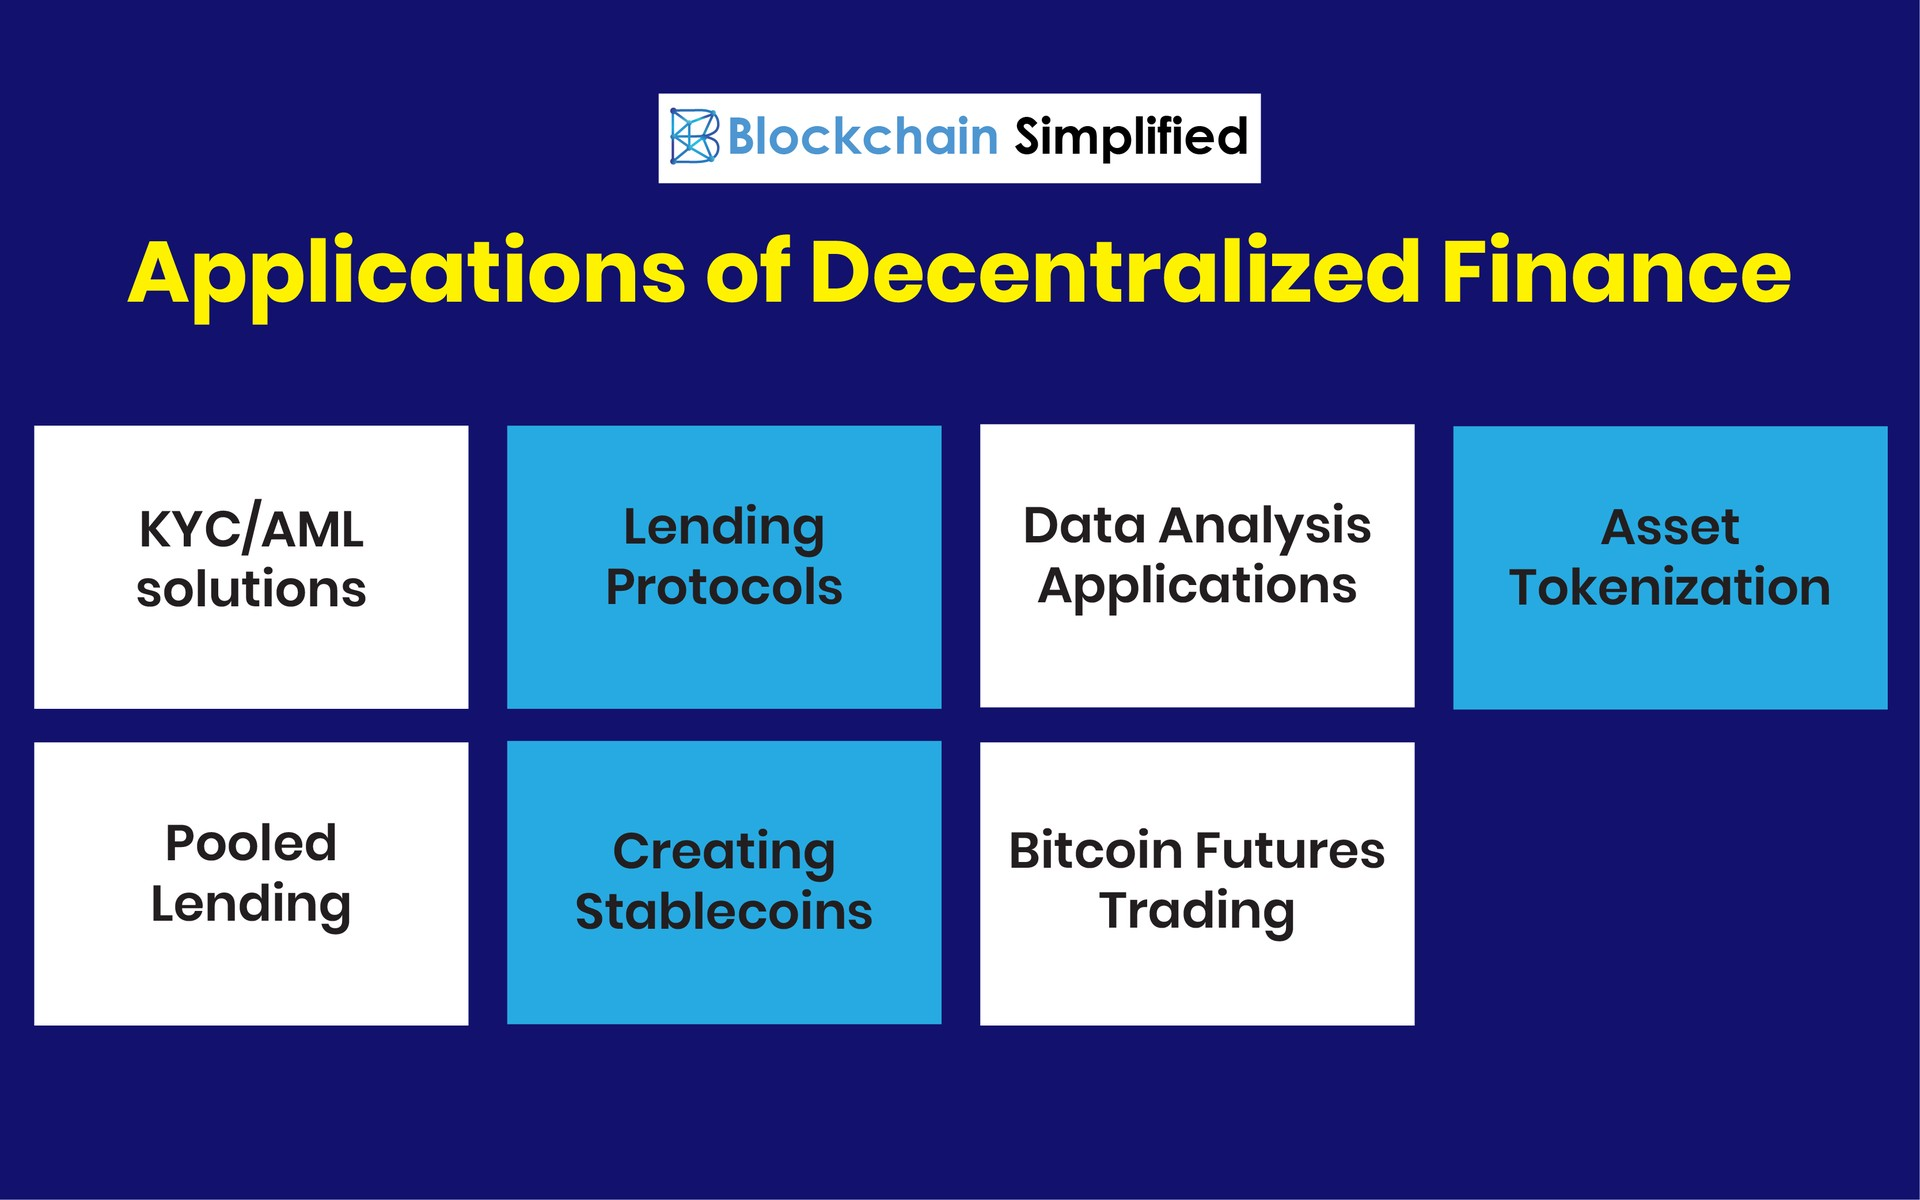 Decentralized Finance applications